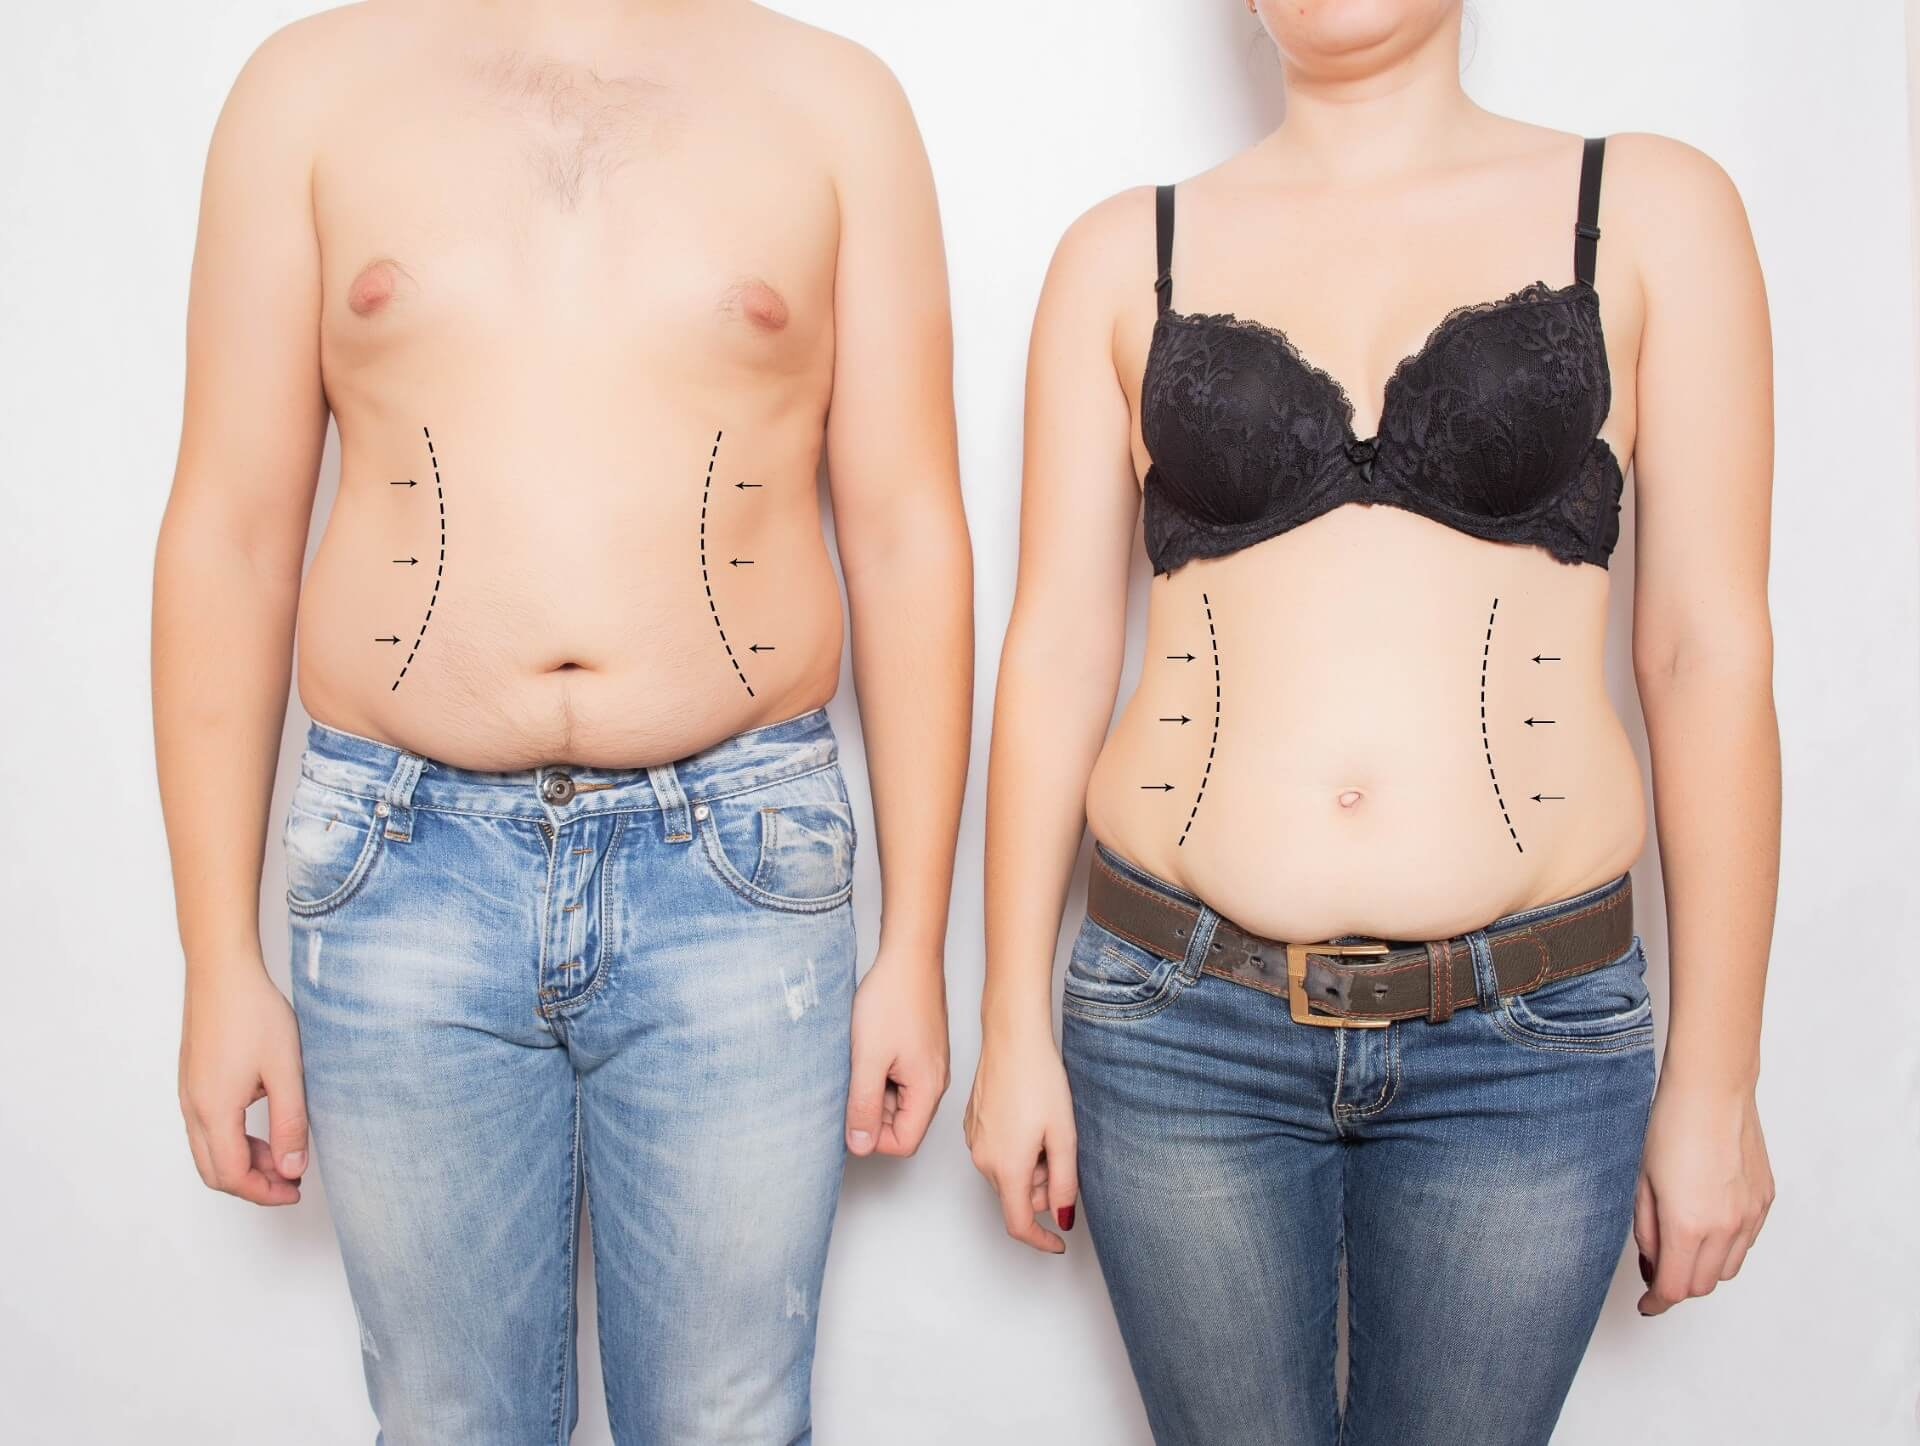 Man and woman side to side with stomach marked